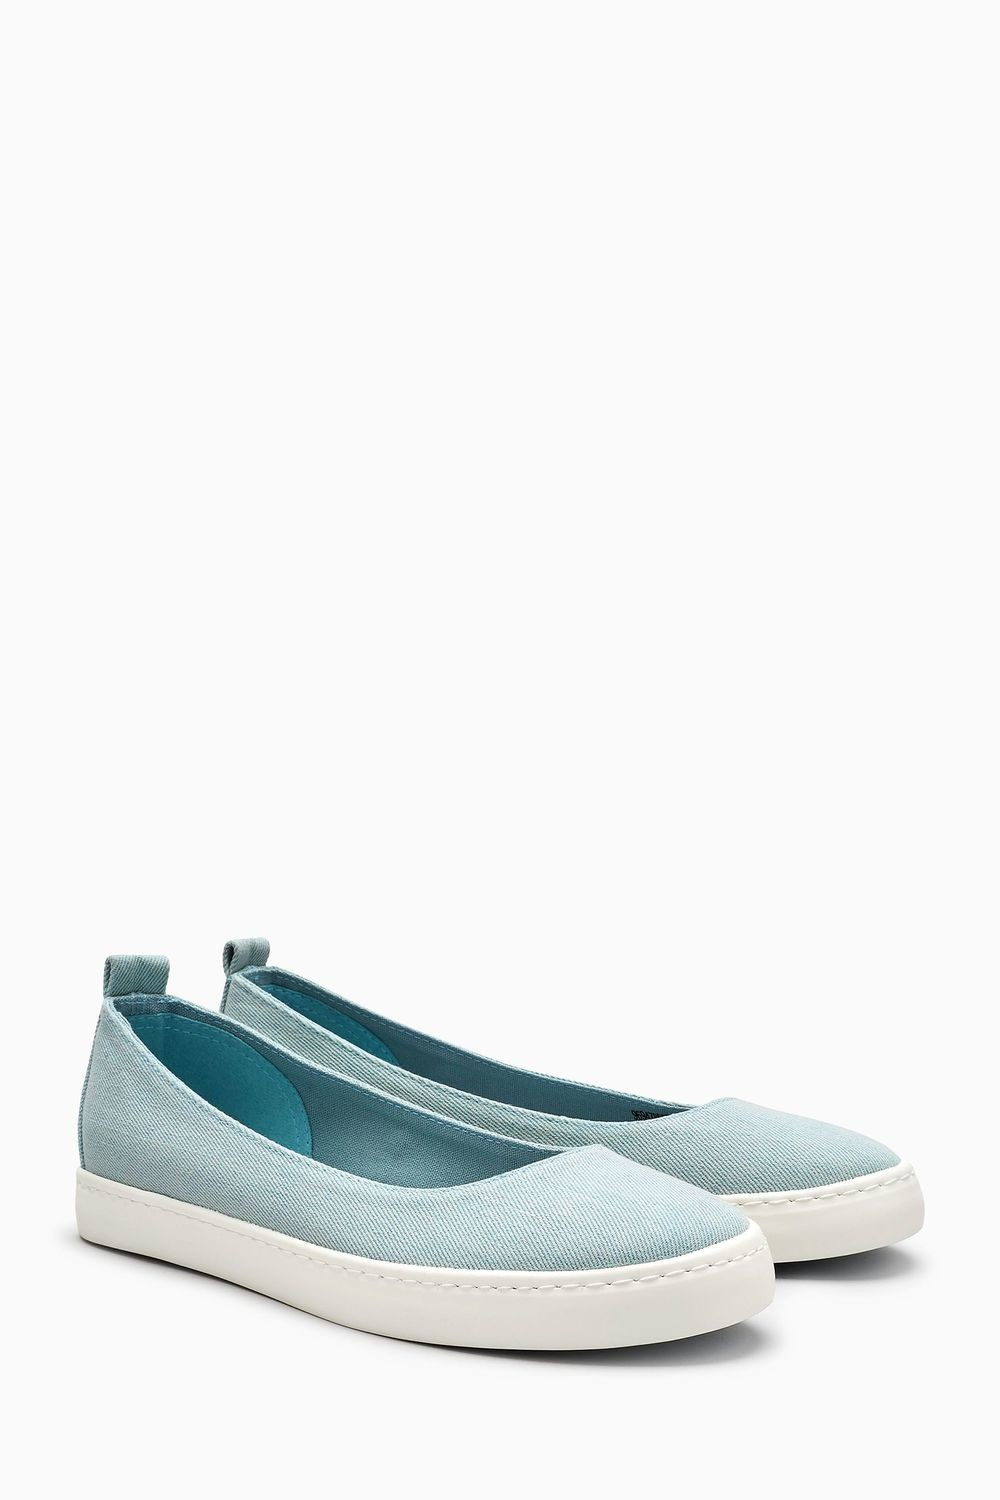 Next Canvas Slip-on Ballerinas Blue